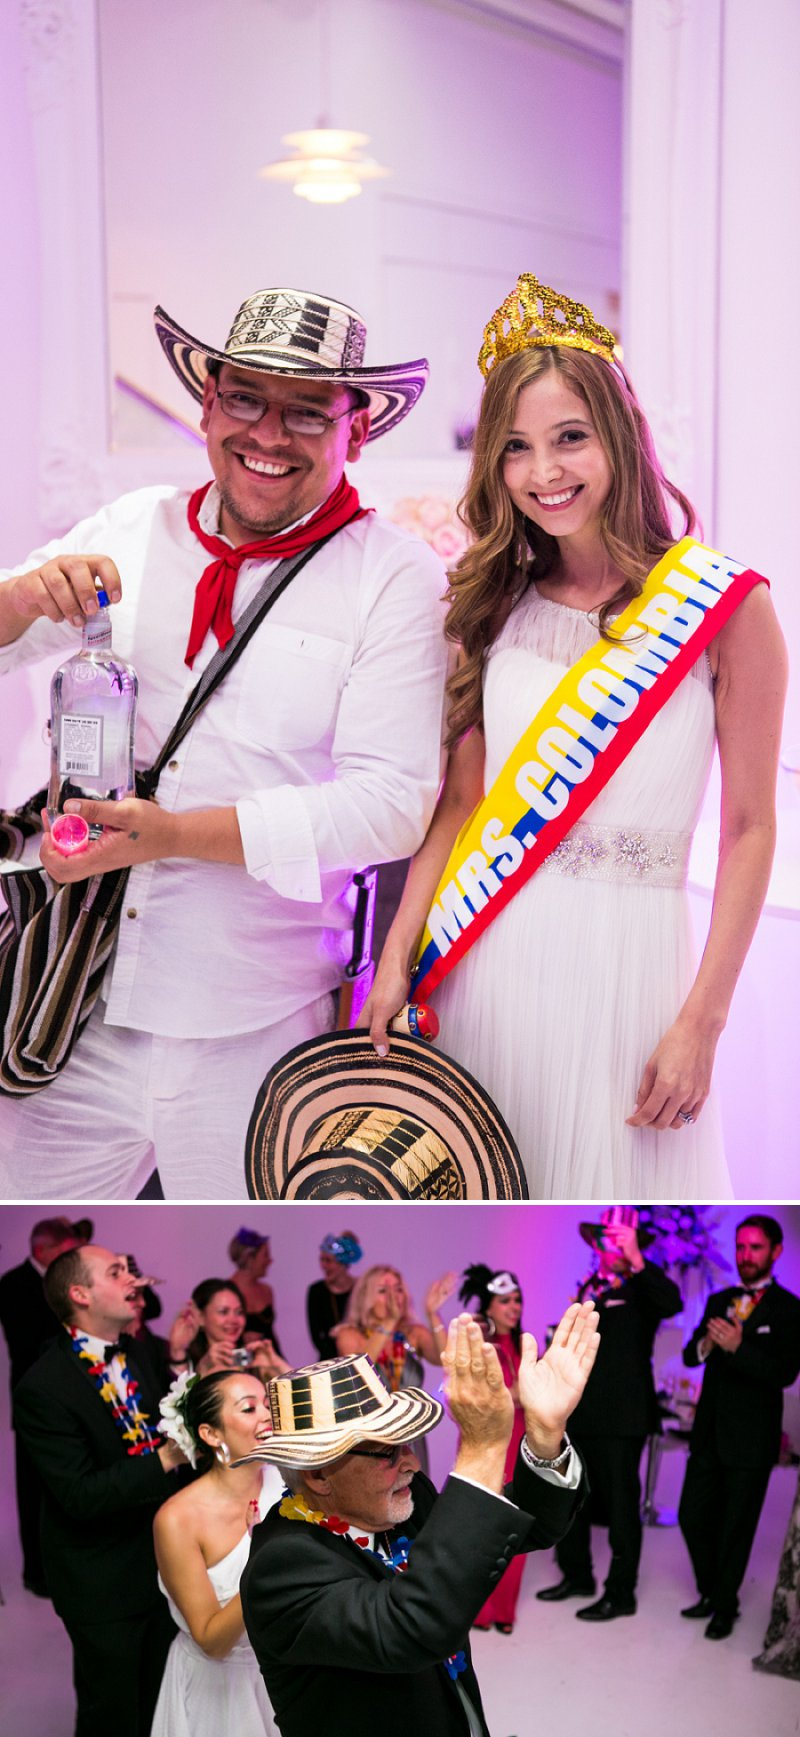 Elegant Wedding At The Connaught Hotel Mayfair With Bride In Derby By Pronovias With Jimmy Choo Sandals And Groom In Navy Suit By D&G With A Colombian Themed Evening Party At Icetank Covent Garden With Images From Anneli Marinovich 9